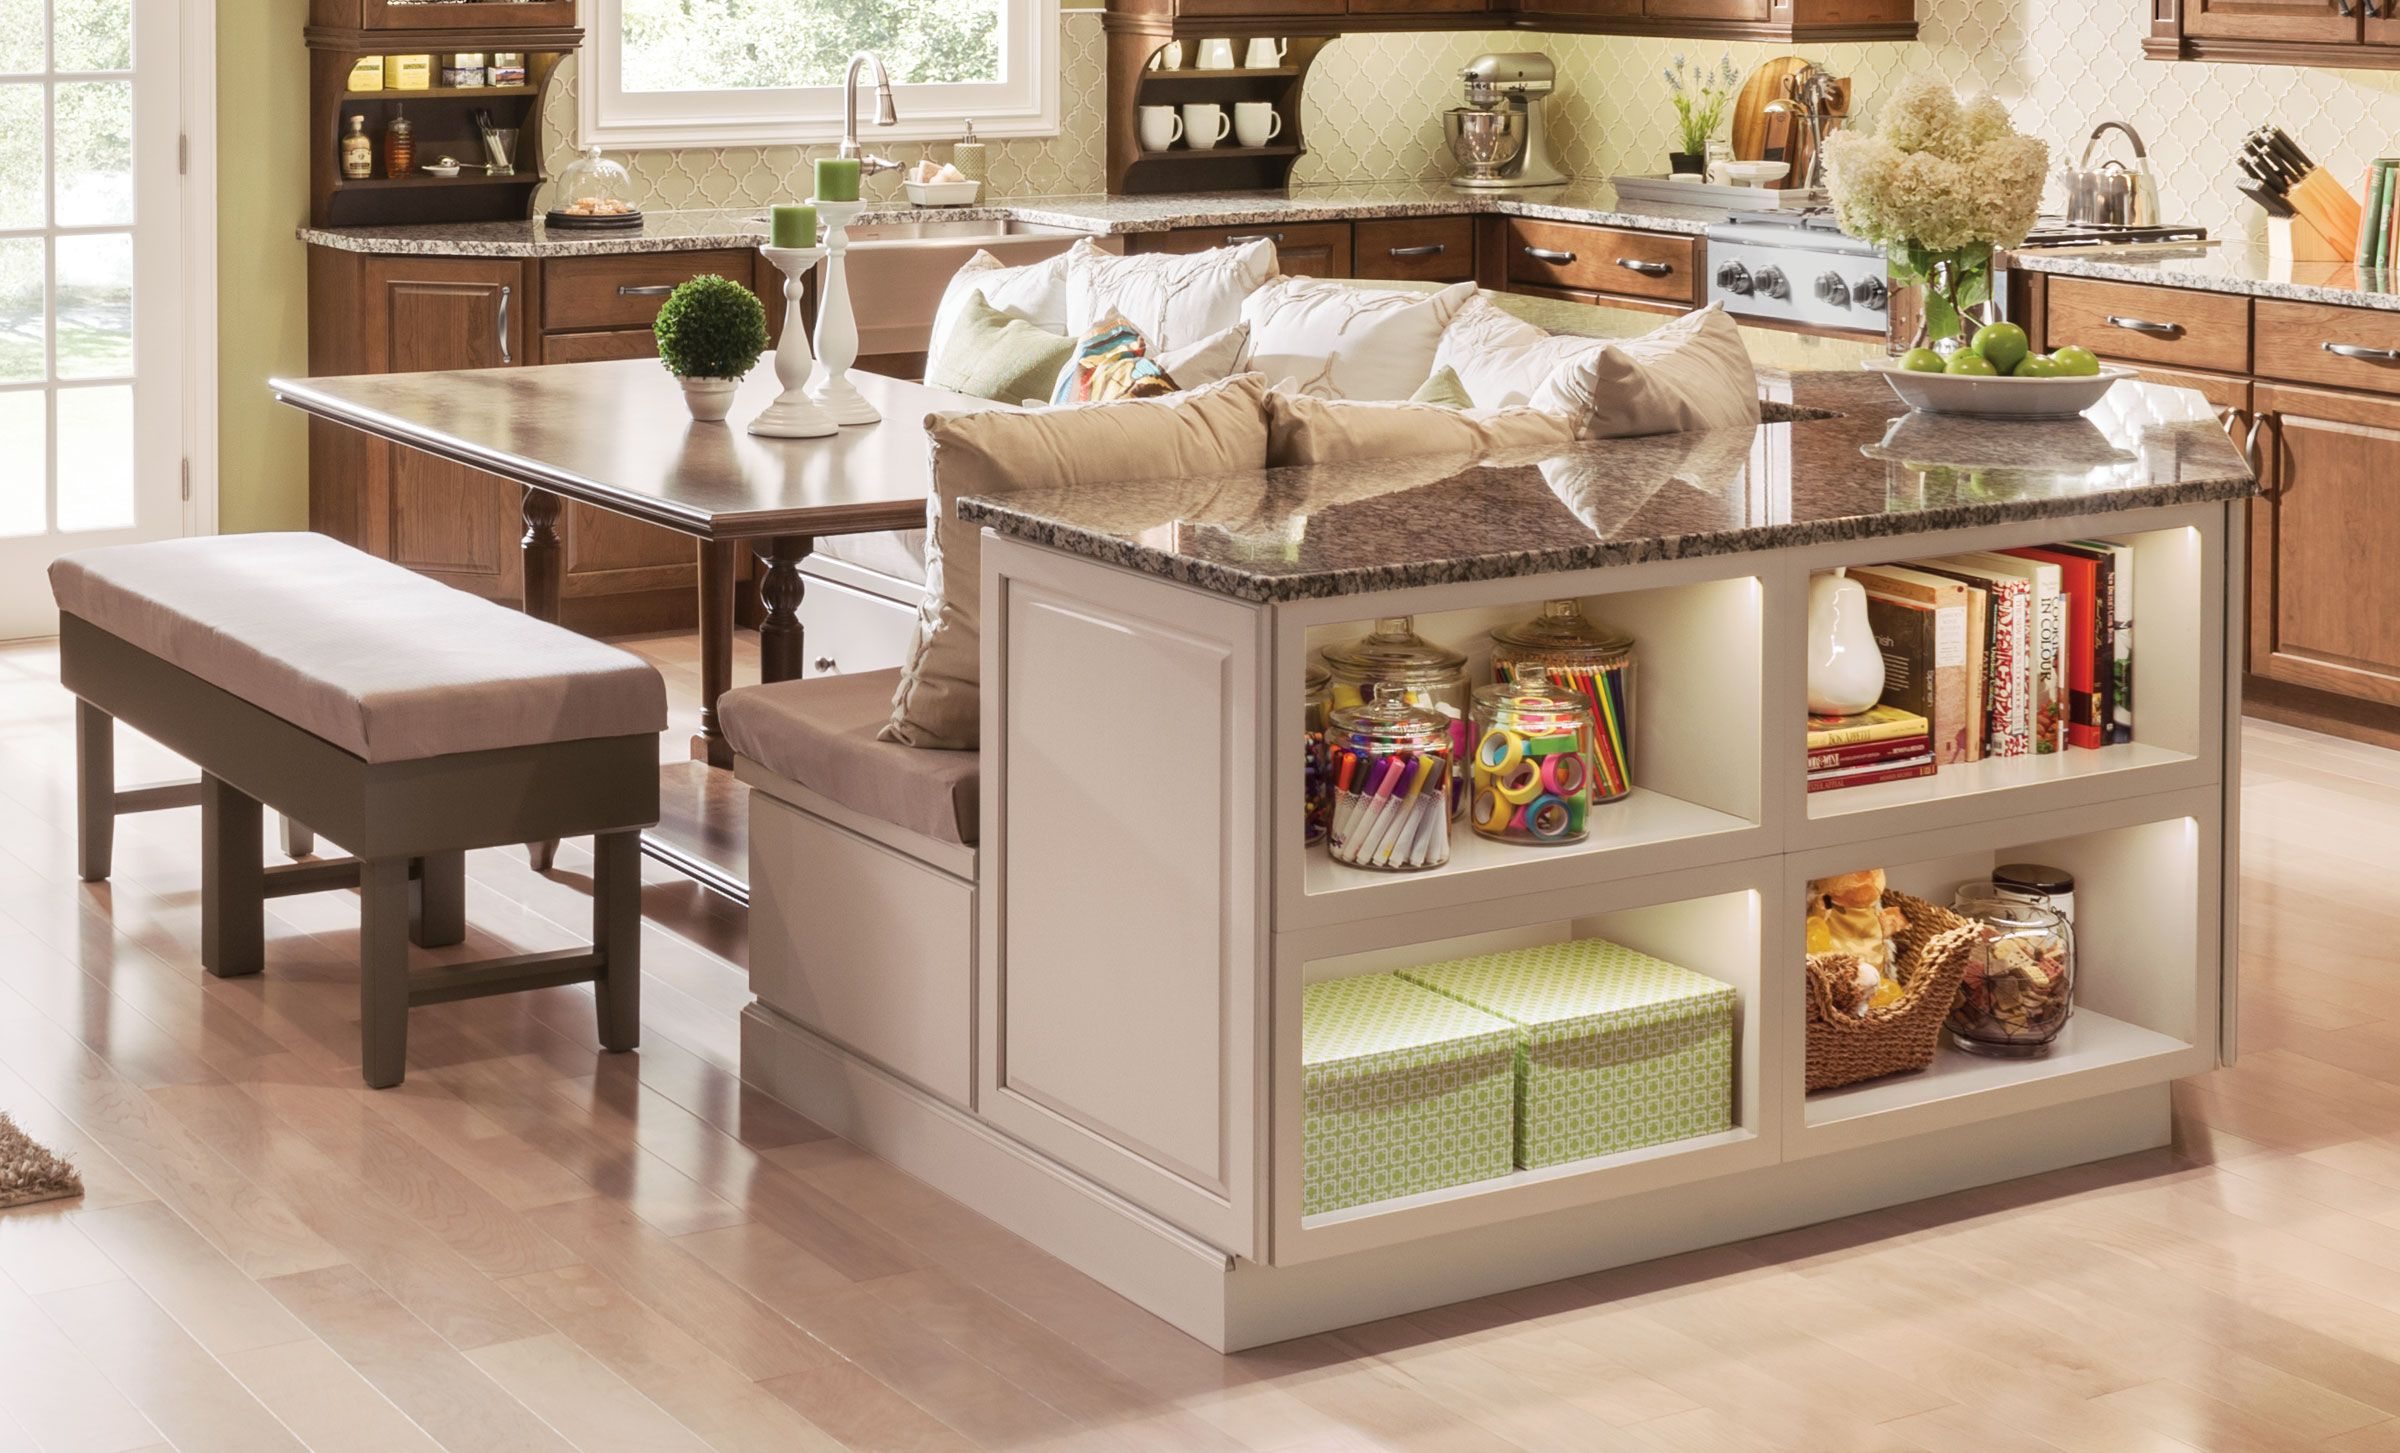 Kraftmaid 39 s open shelving in chai with cocoa glaze for Dove white cabinets with cocoa glaze